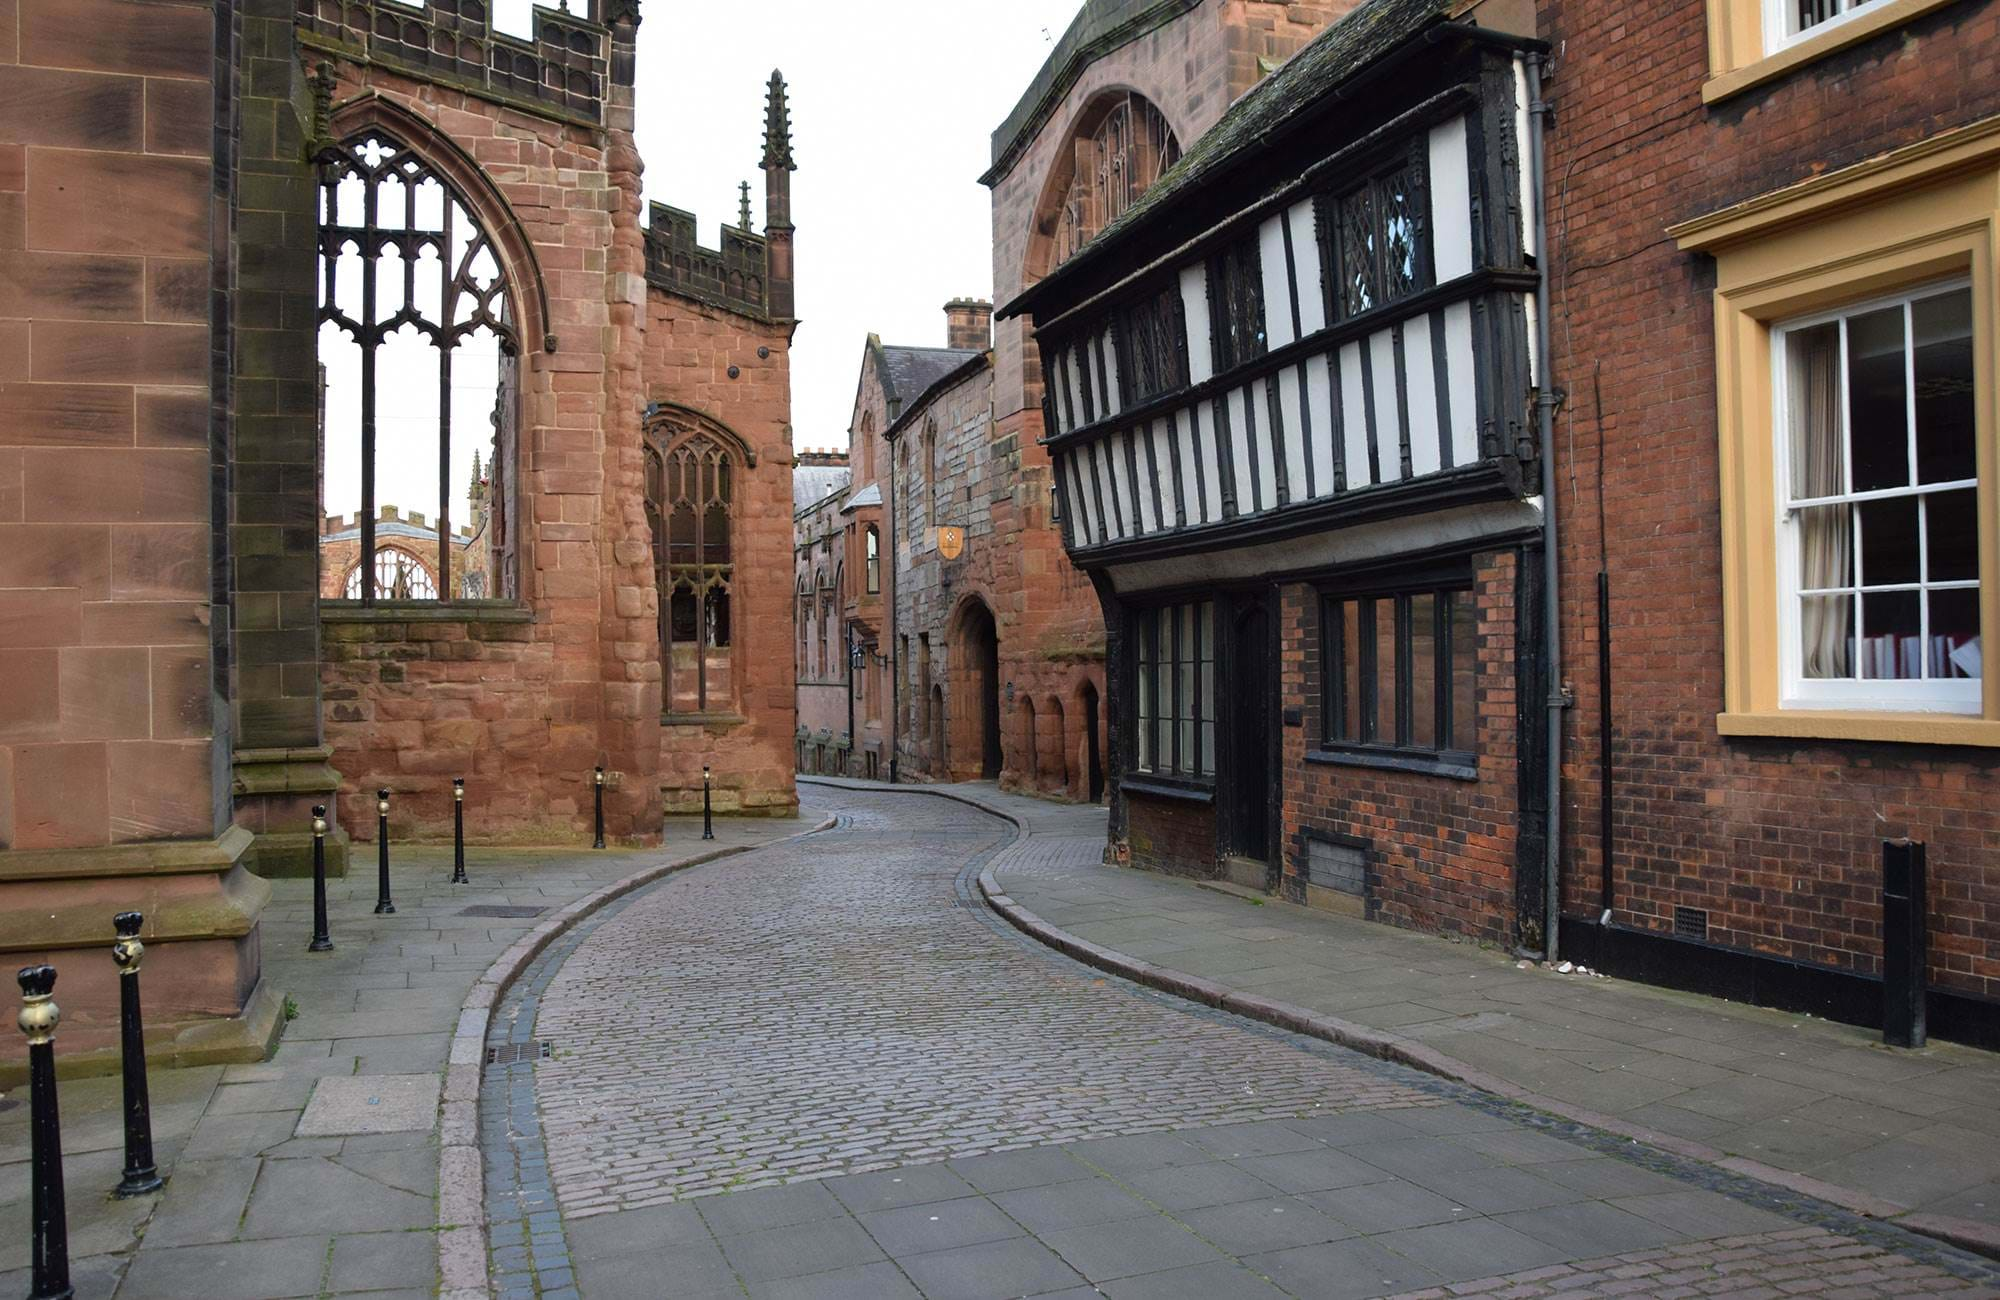 Street-in-the-old-town-of-coventry